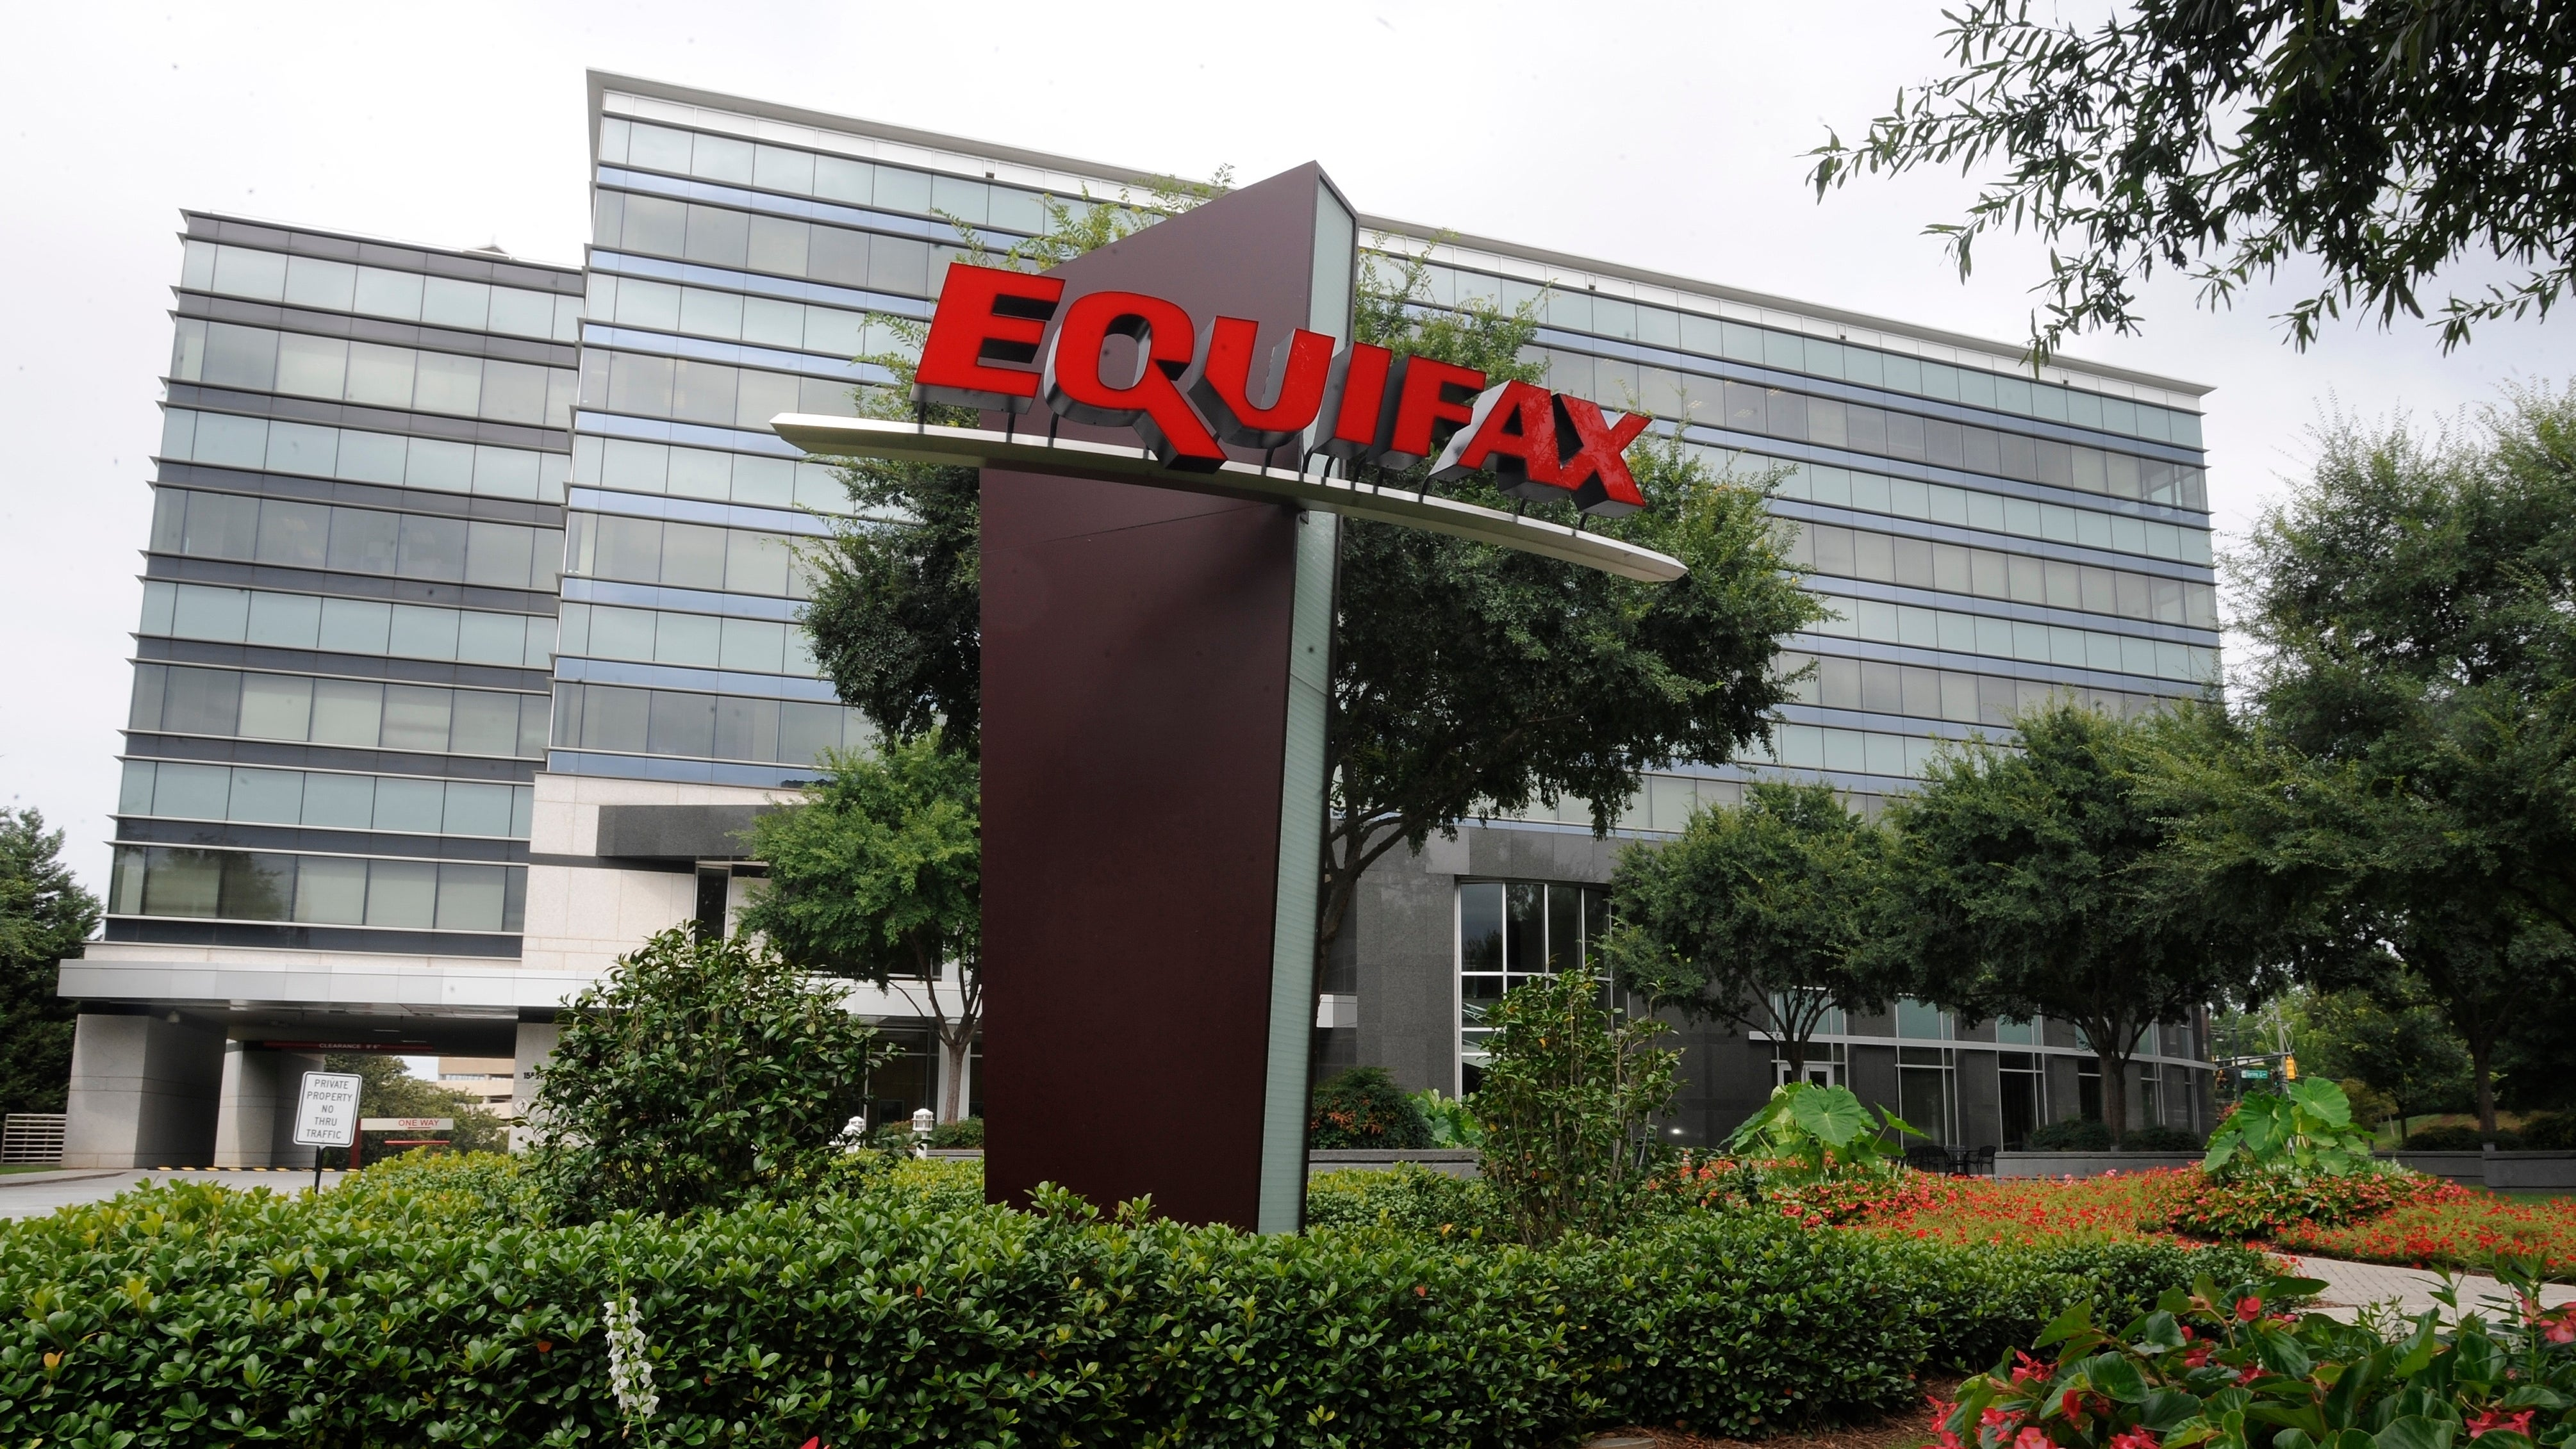 Equifax's Website Redirected People To Malware Thanks To A Compromised, Years-Old Plugin